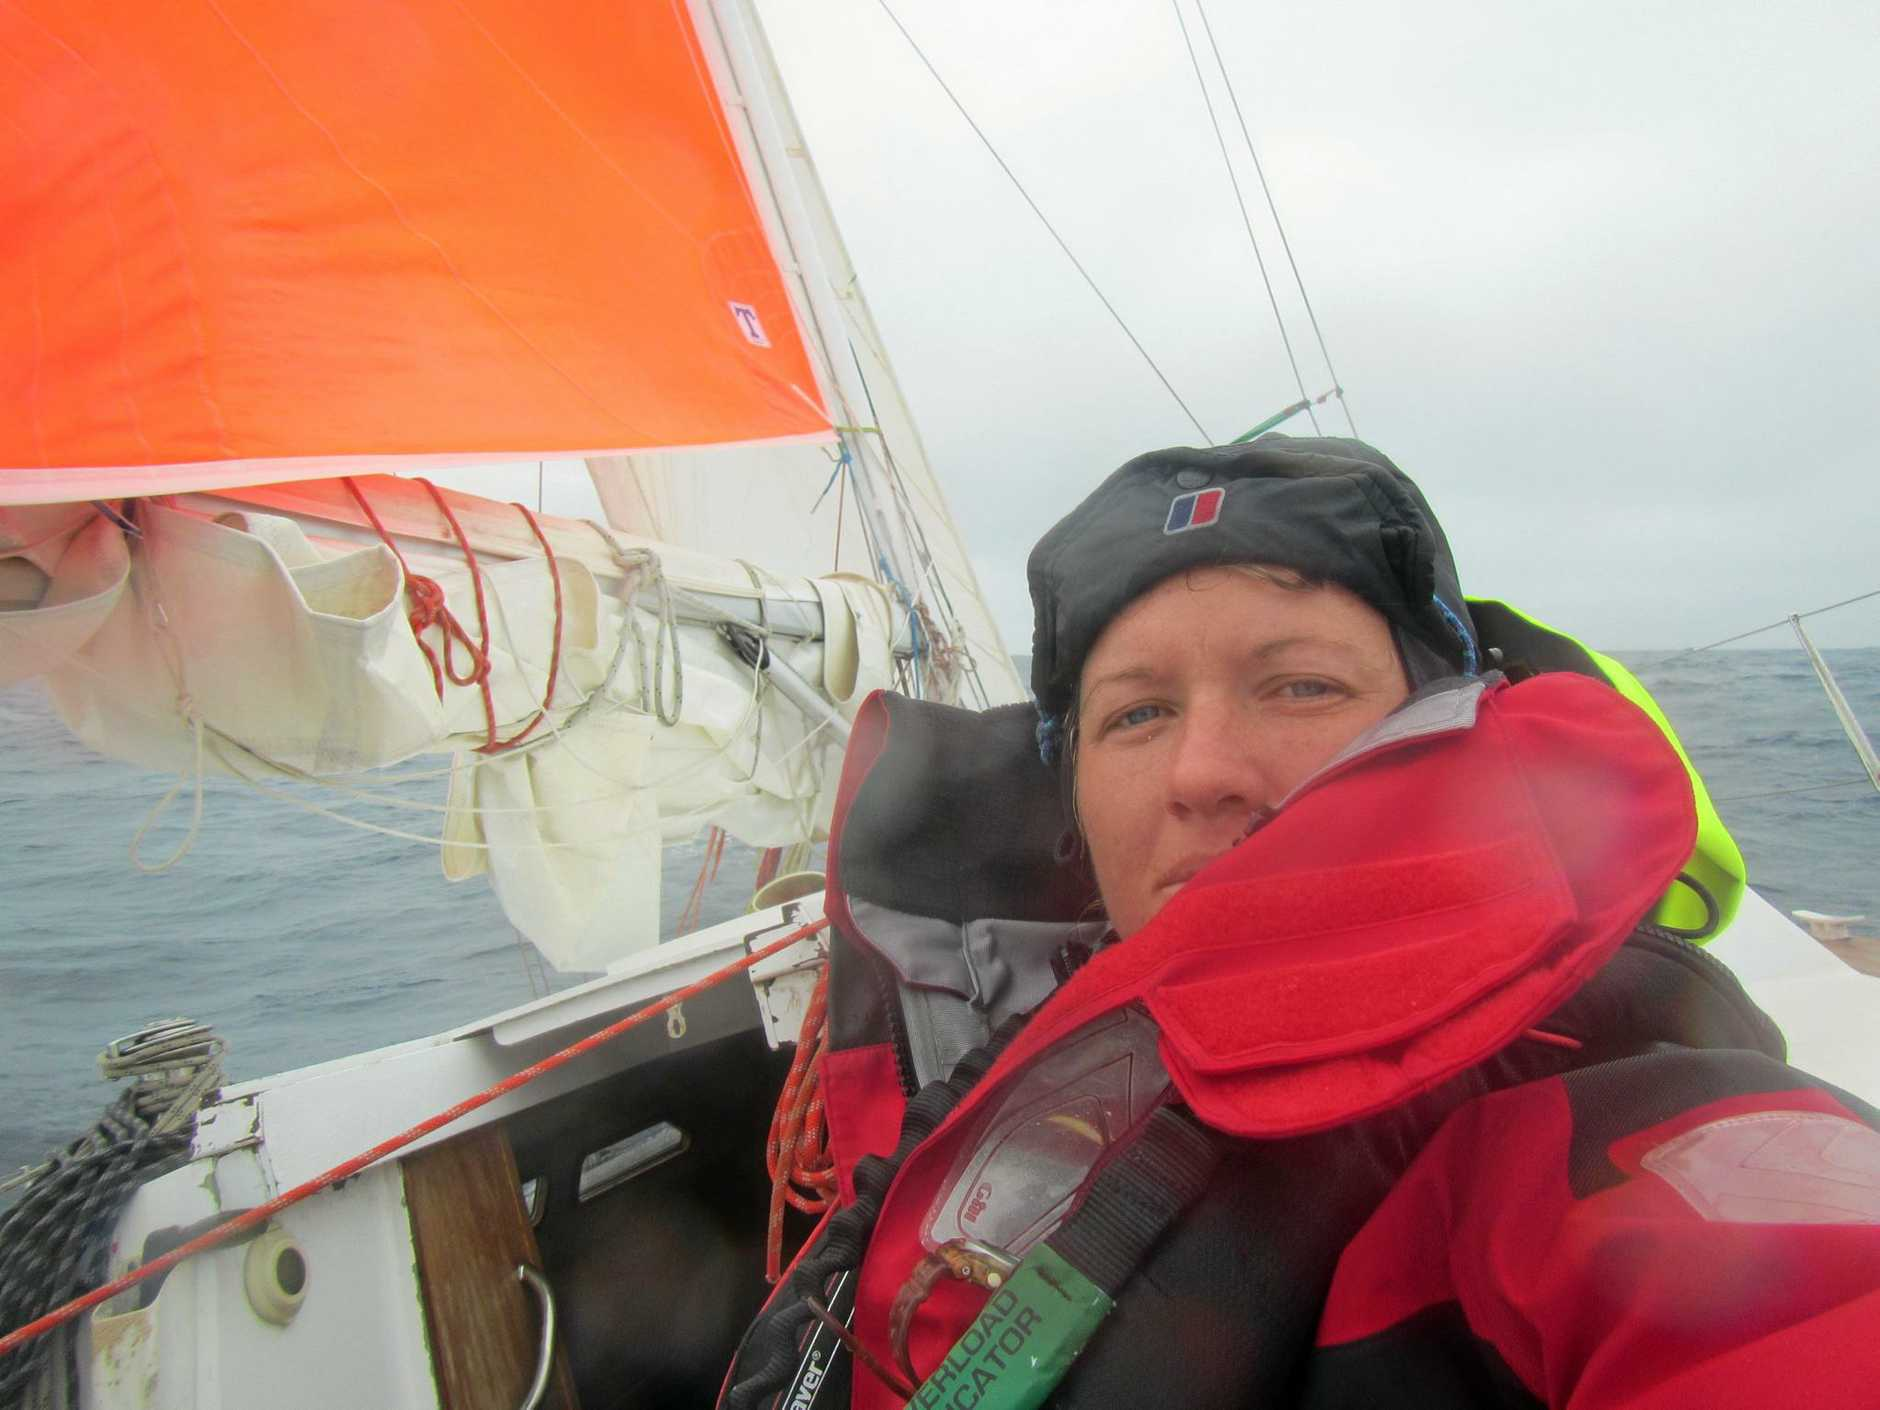 Former Sunshine Coast sailor Lisa Blair is attempting to become the first woman to circumnavigate Antarctica.